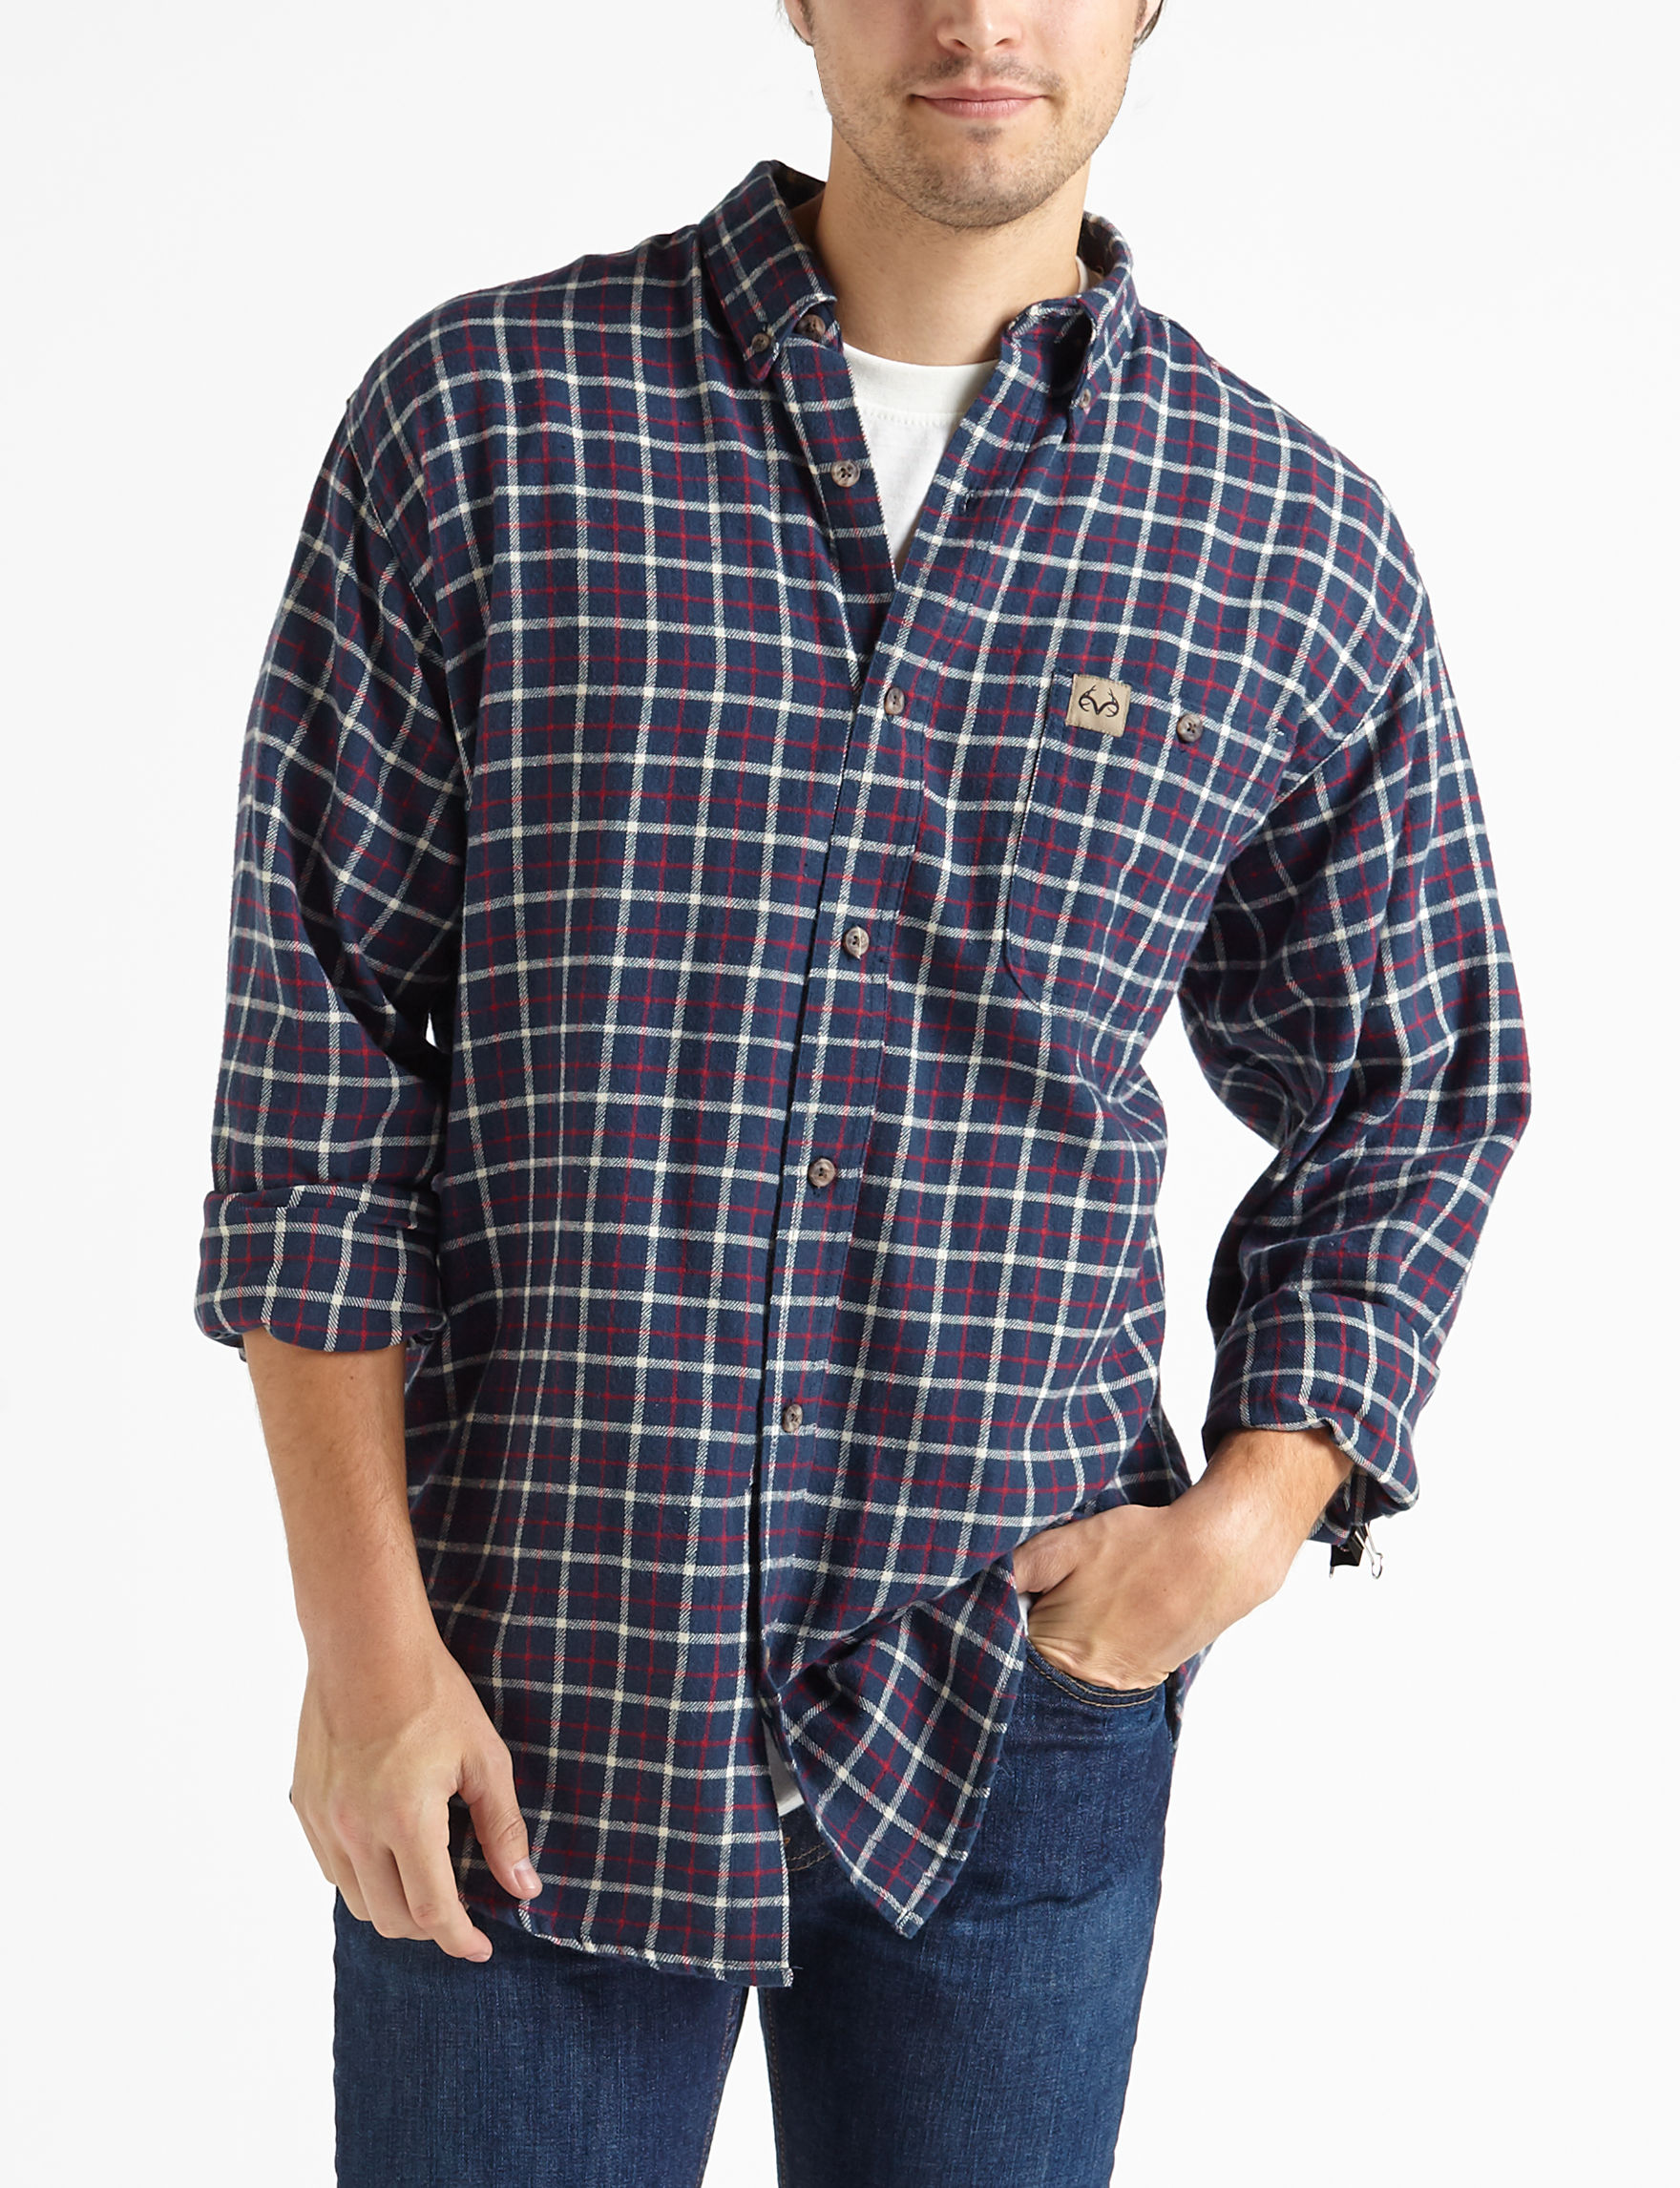 Realtree Midnight Casual Button Down Shirts